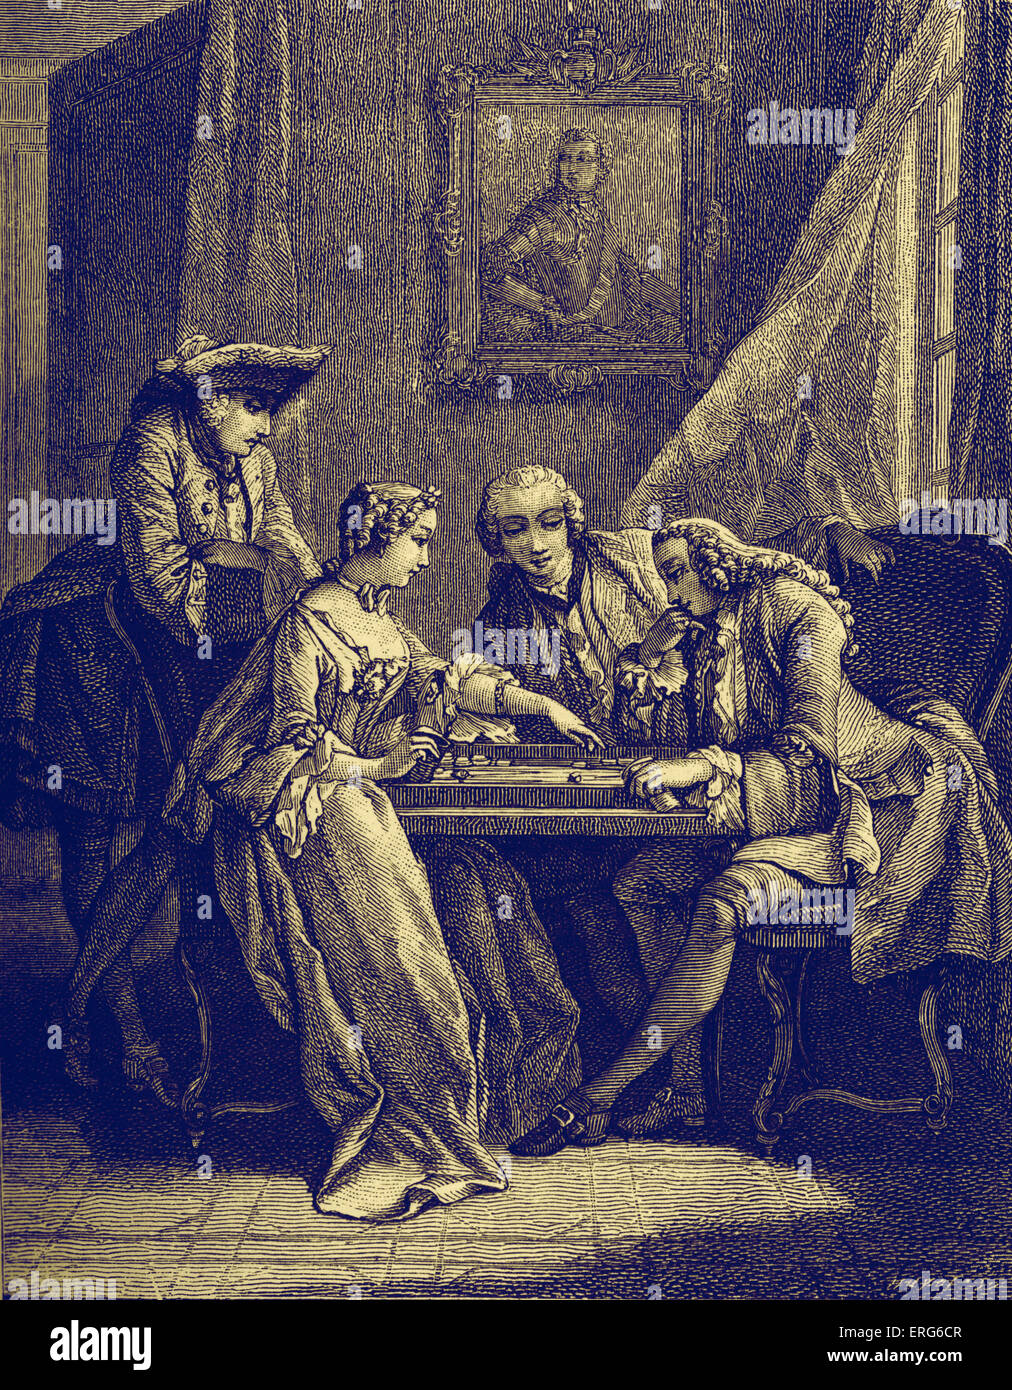 Bourgeois men and women at a gaming table, playing French game of Trictrac (predecessor of backgammon) by a window. - Stock Image